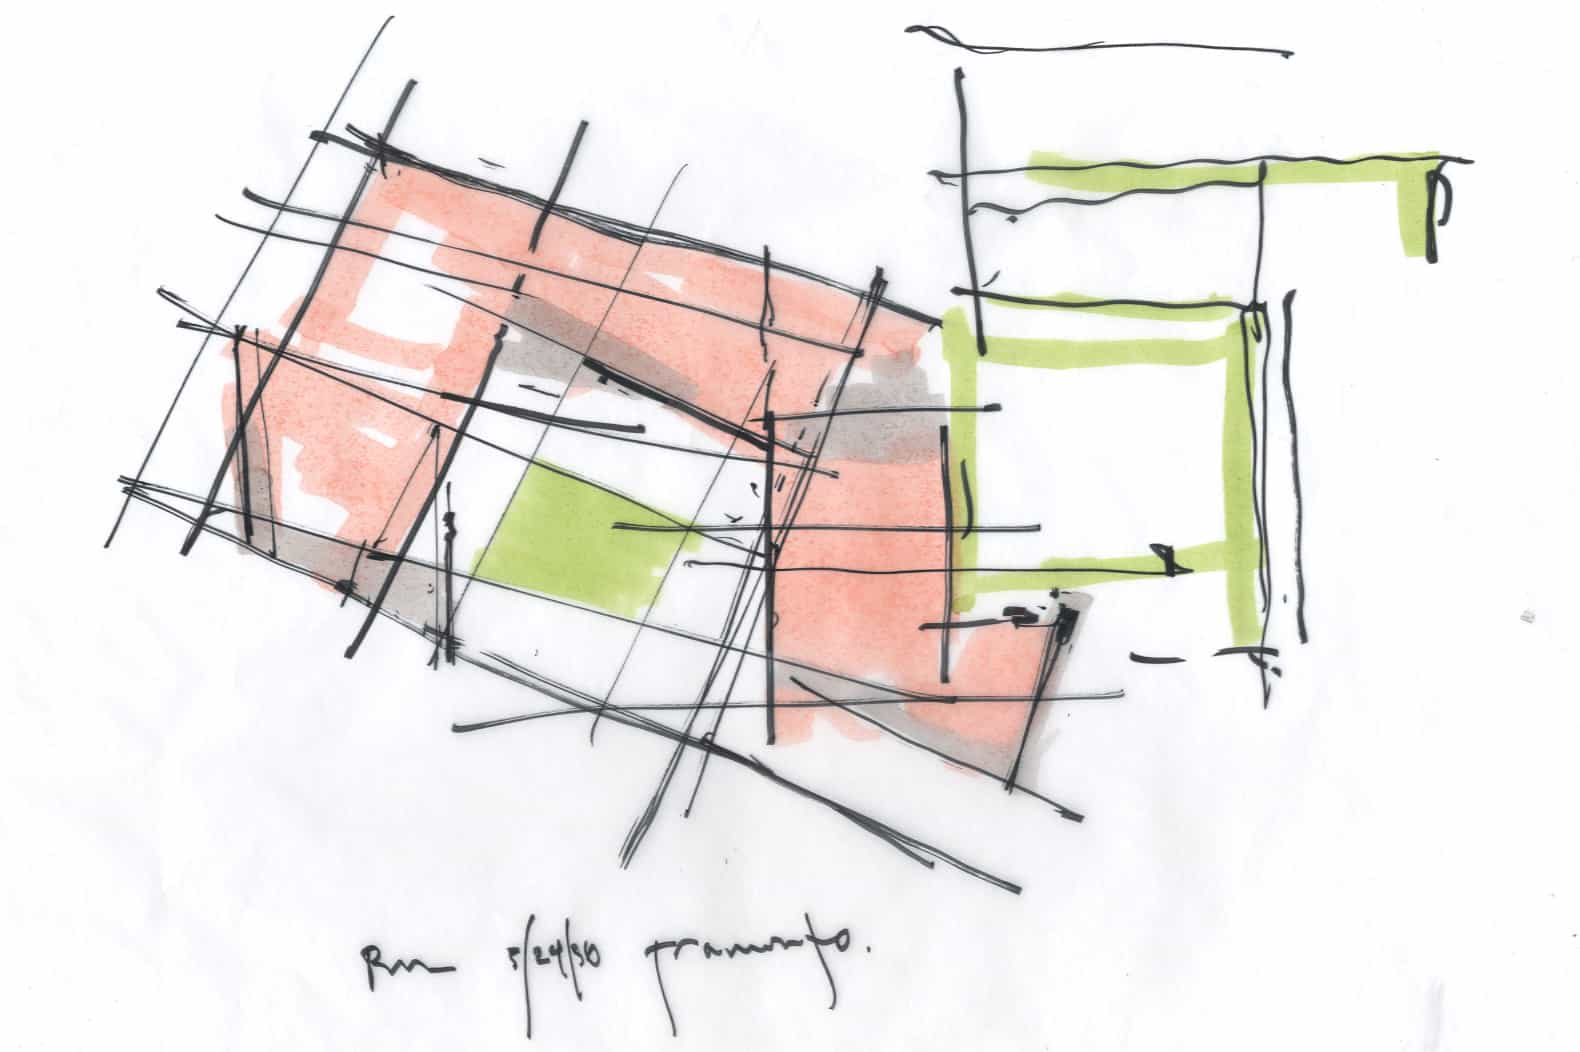 0904_Tramonto_abstract plan